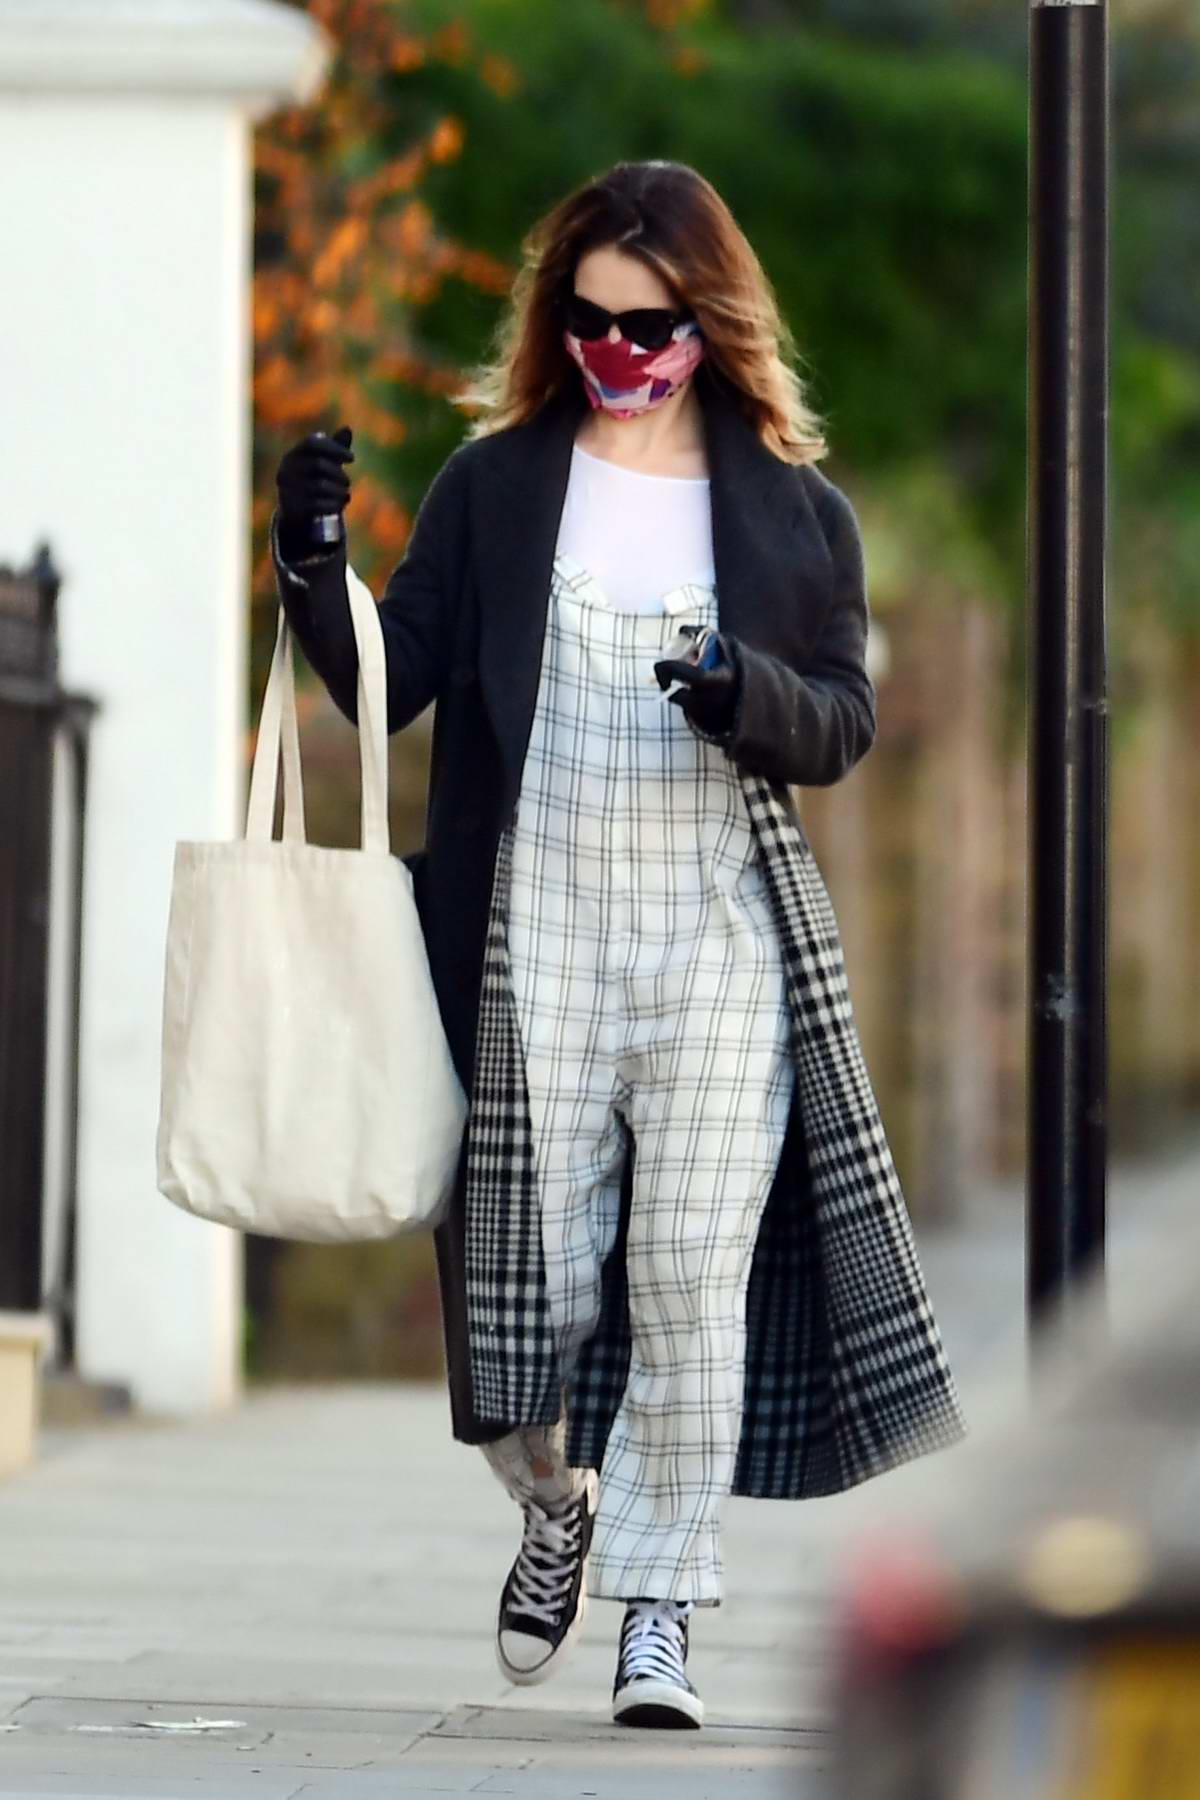 Lily James seen wearing a colorful mask and checkered overalls as she steps out in North London, UK